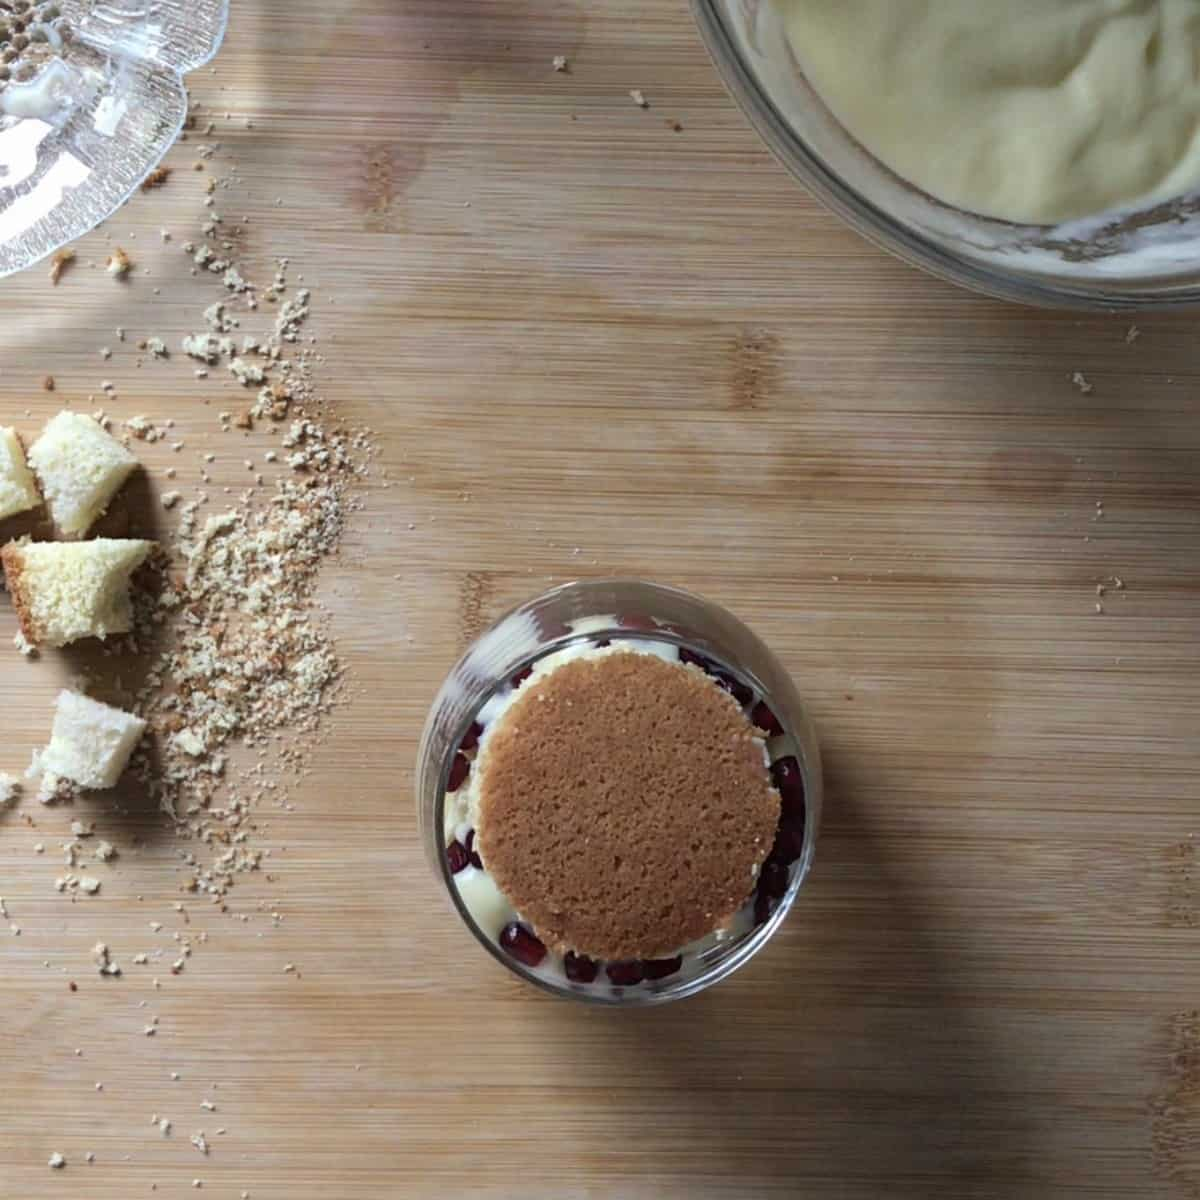 Top round piece of sponge cake for an individual trifle in a glass.